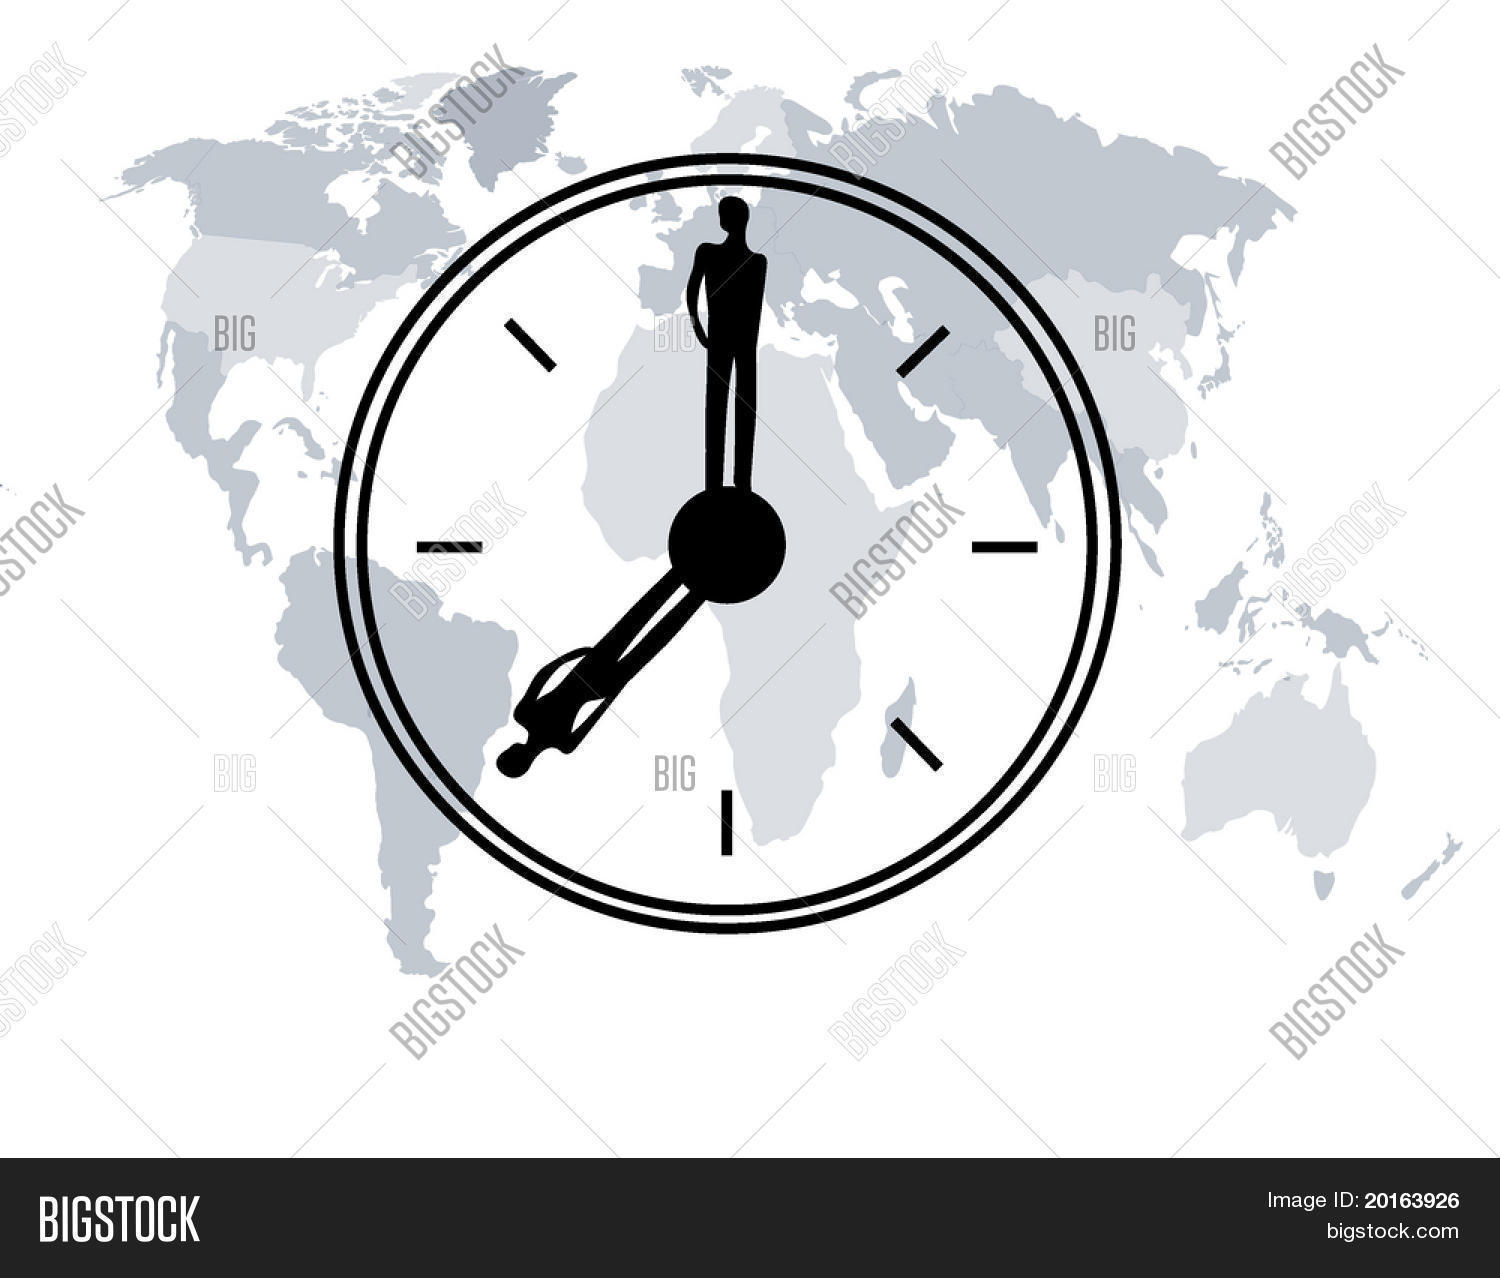 World map man woman vector photo free trial bigstock world map with man and woman silhouette as clock hands gumiabroncs Gallery